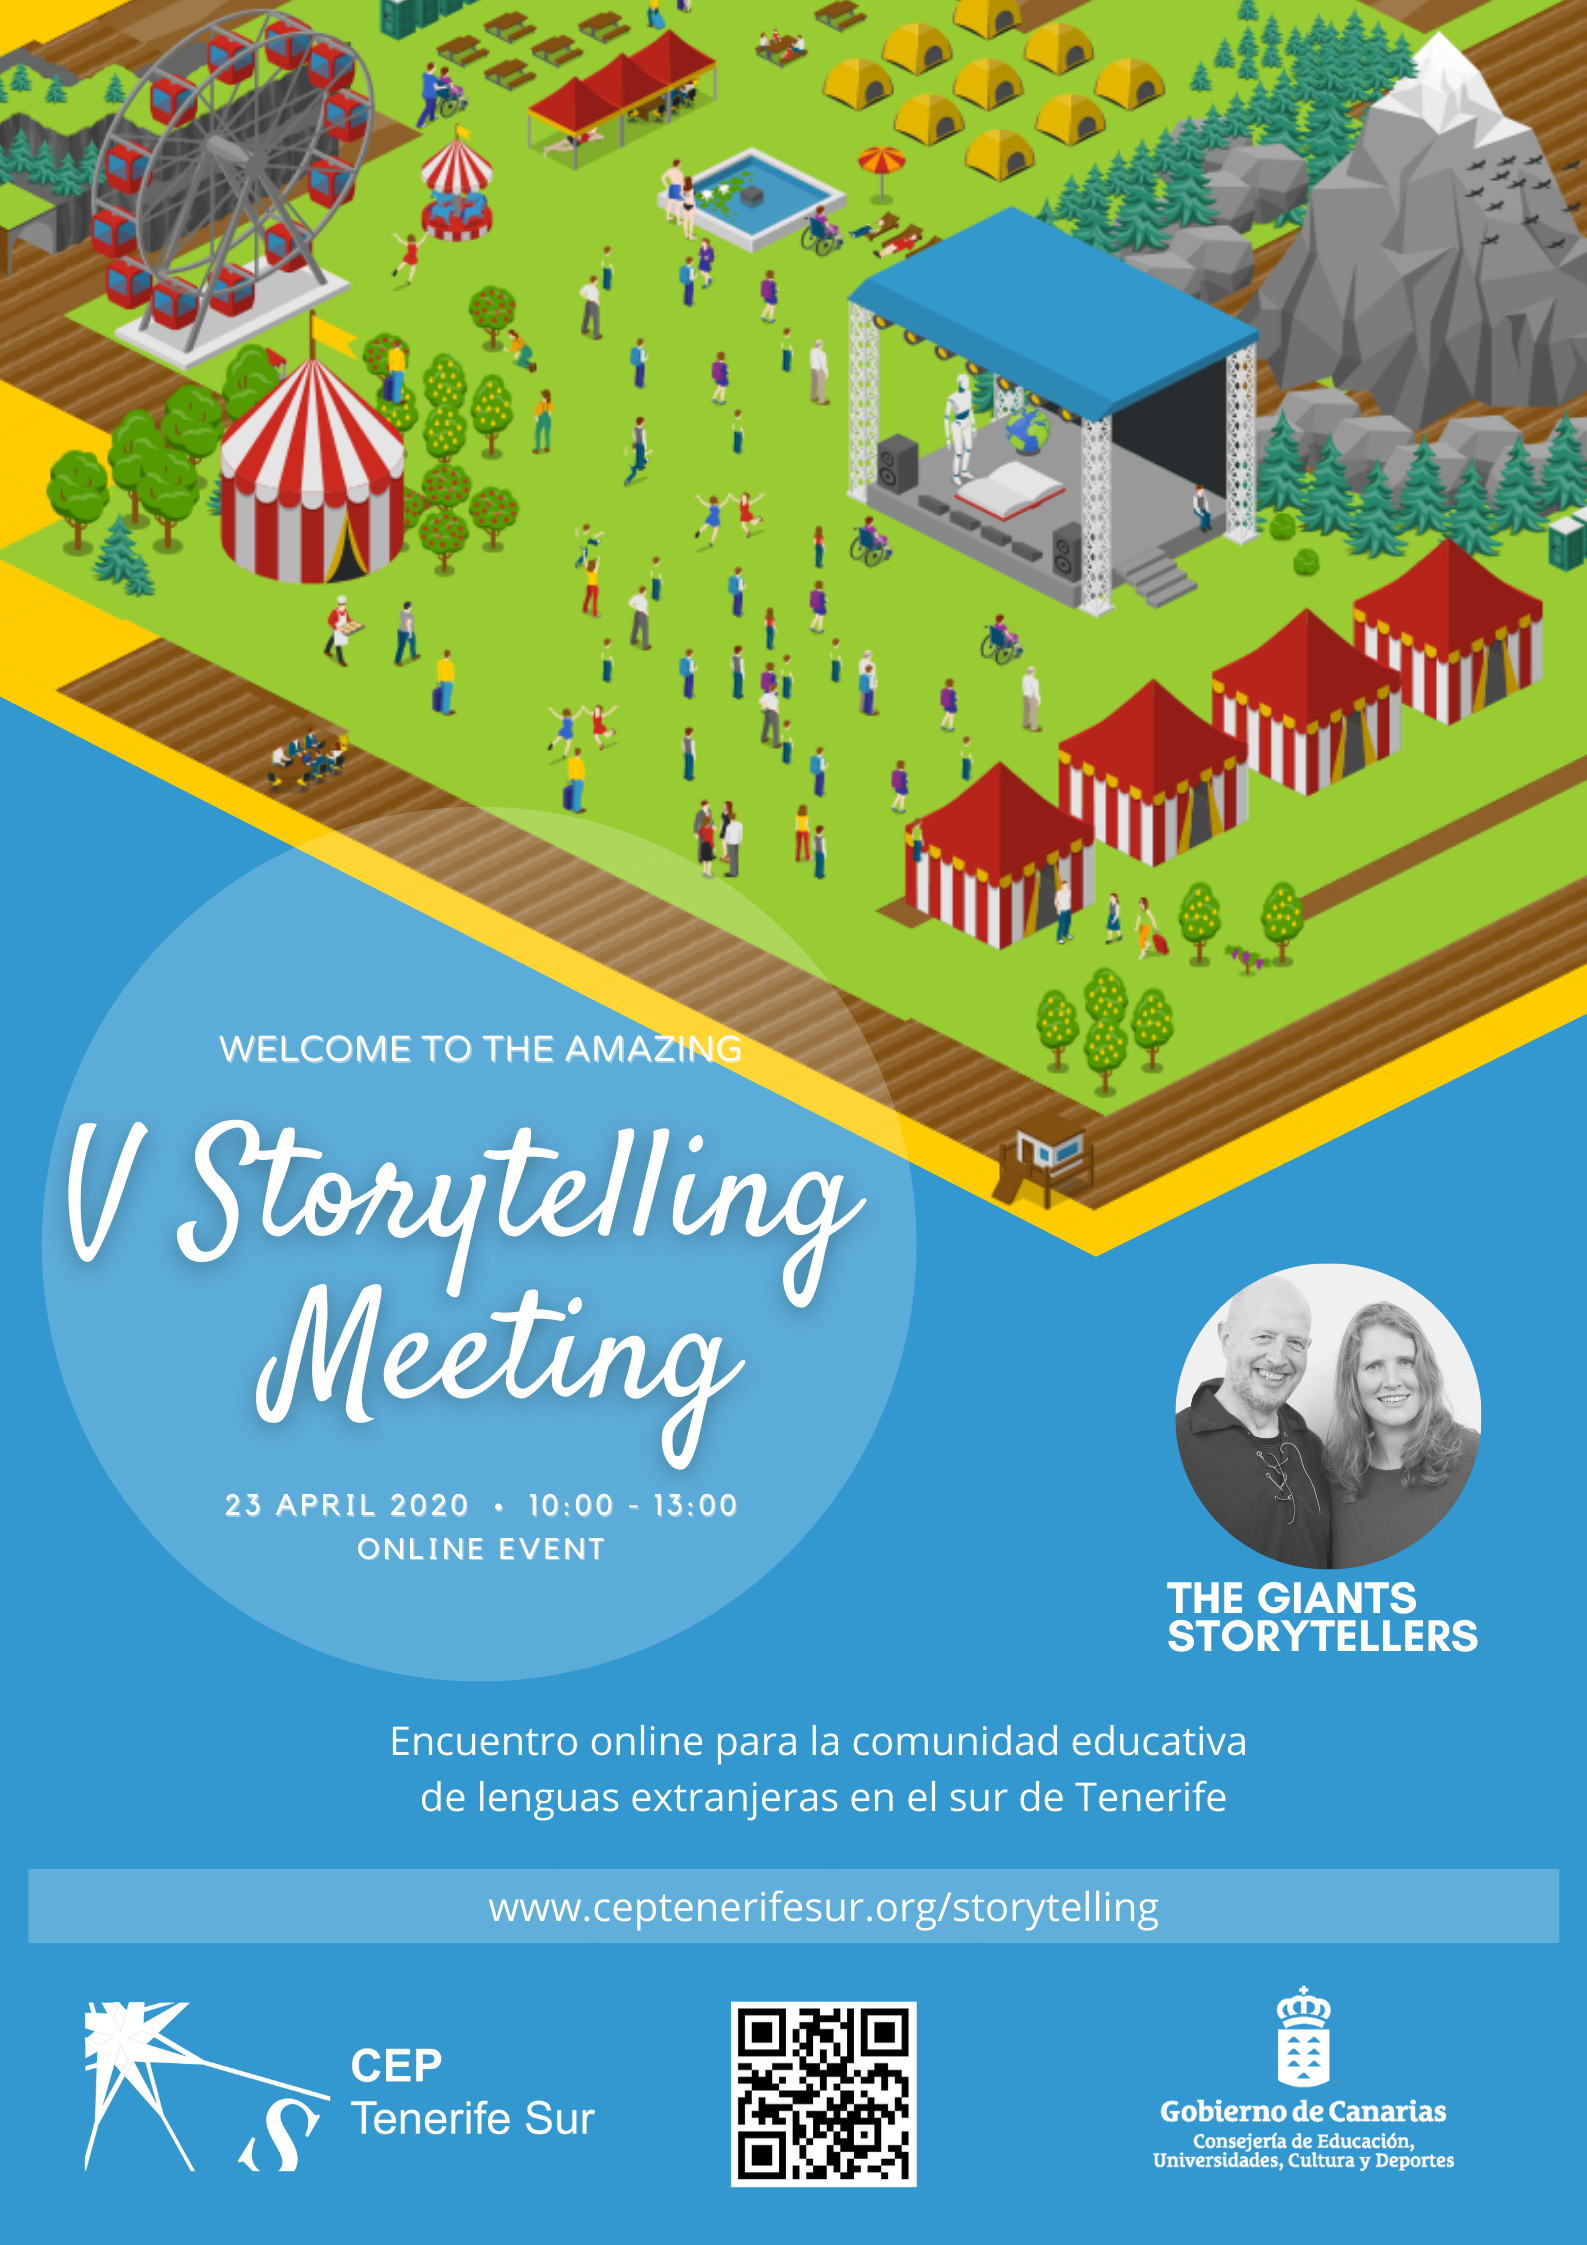 STORYTELLING MEETING EVENT